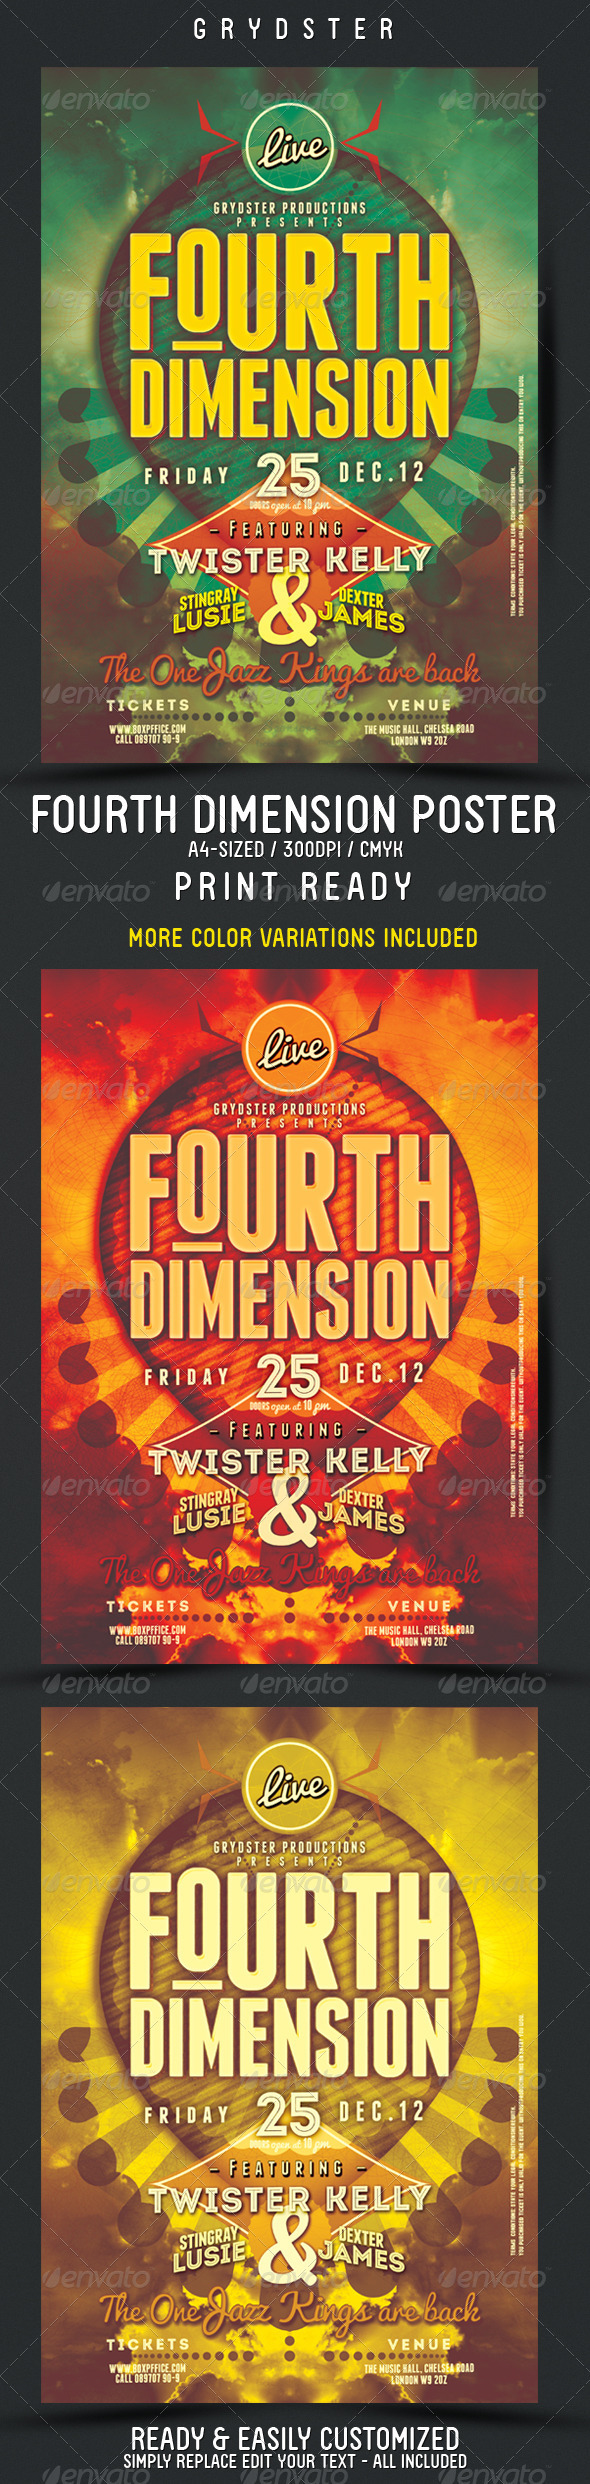 Fourth Dimension Flyer - Poster - Clubs & Parties Events